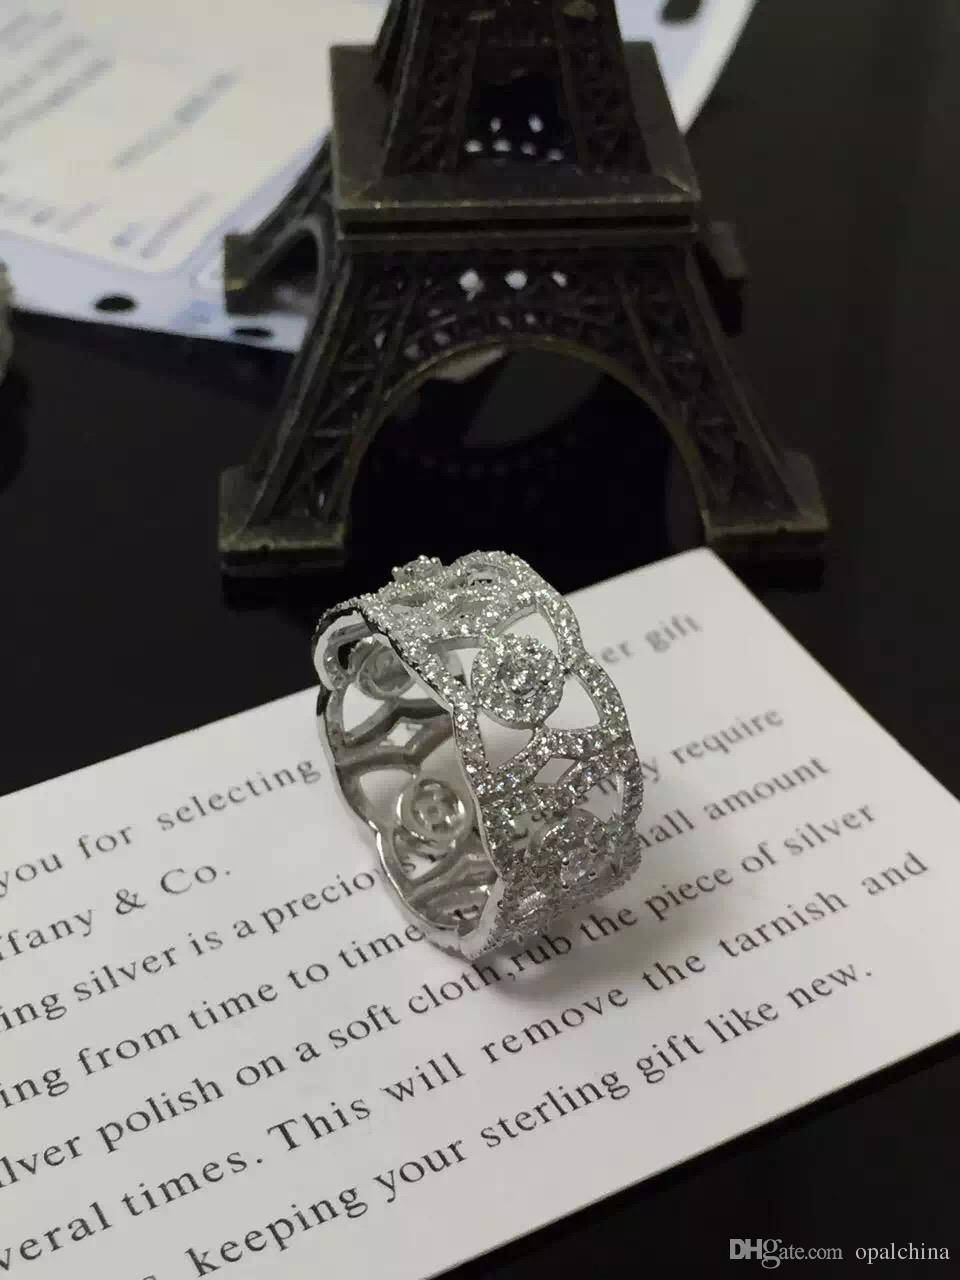 NEFFLY jewelry S925 Full Diamond Stering Silver Ring European Pandora Style Superb Micro Inlay Techn